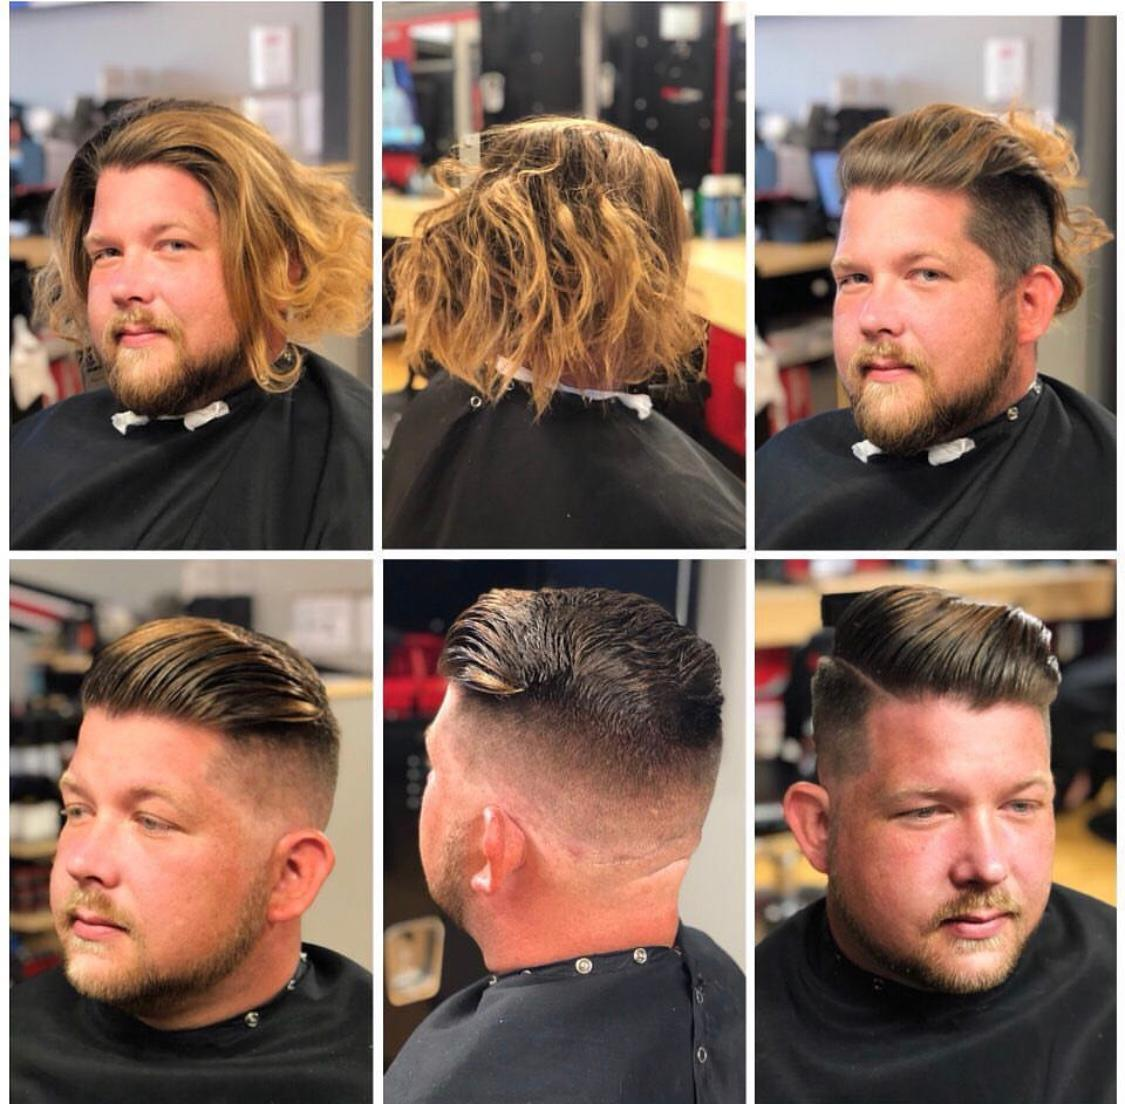 Sport Clips Haircuts of New Port Richey image 21